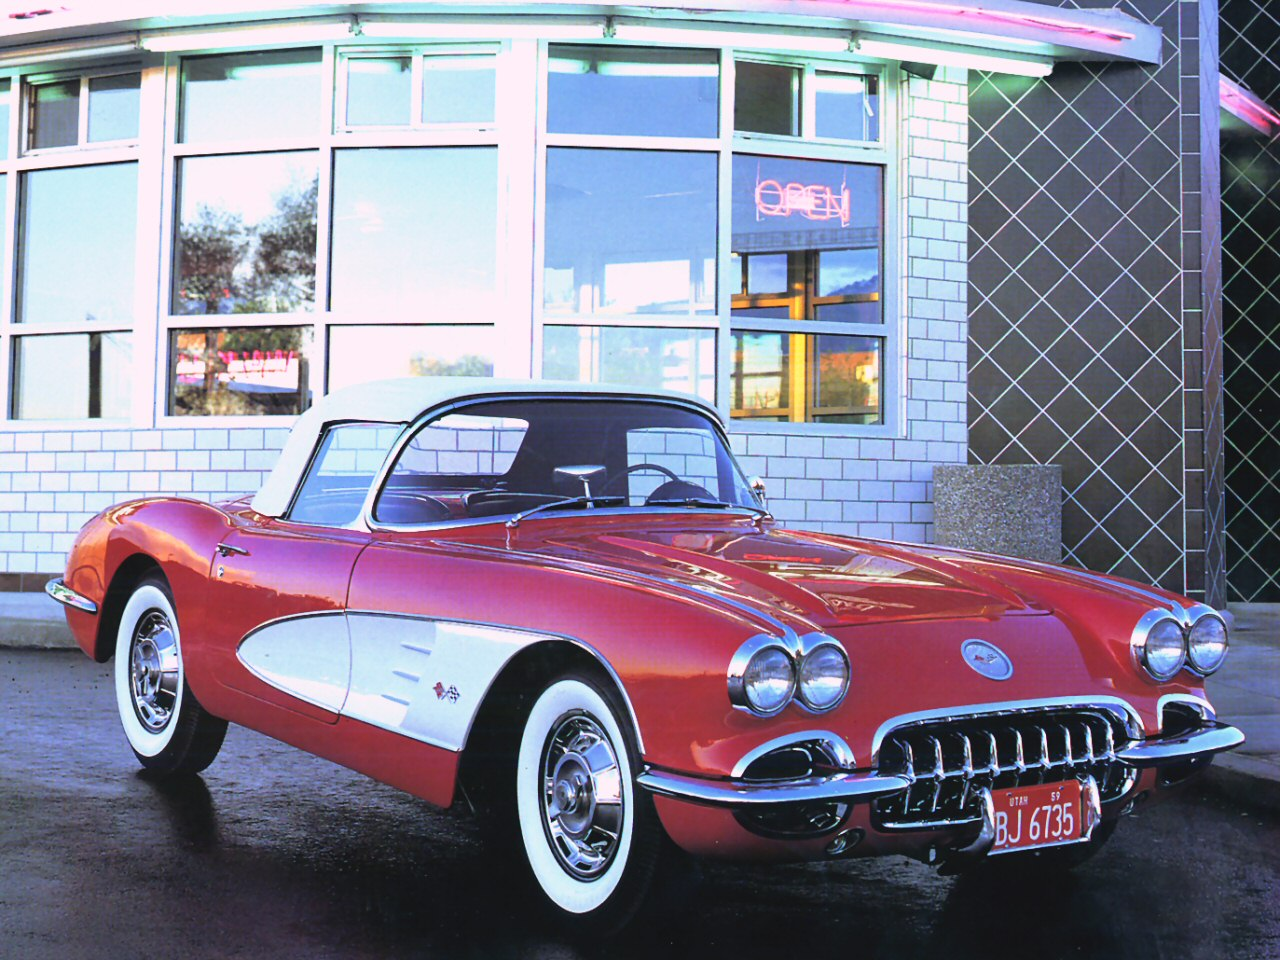 1959 Chevrolet Corvette Convertible Roadster, 1959 Corvette Convertible Red w/ white panels